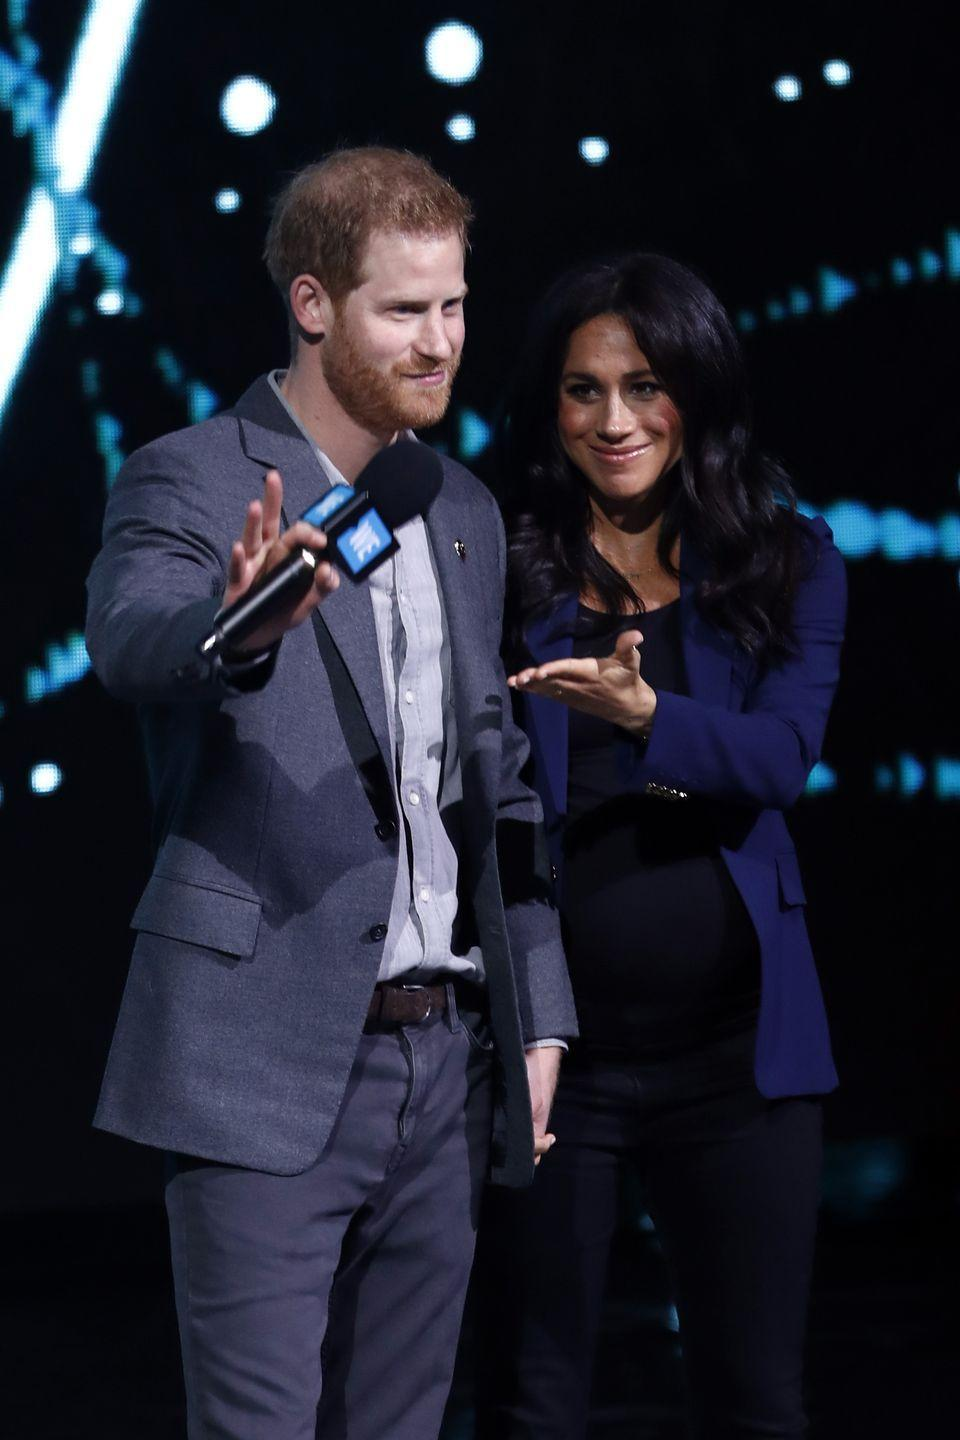 <p>Markle surprised the crowds at WE Day by joining her husband on stage.</p>